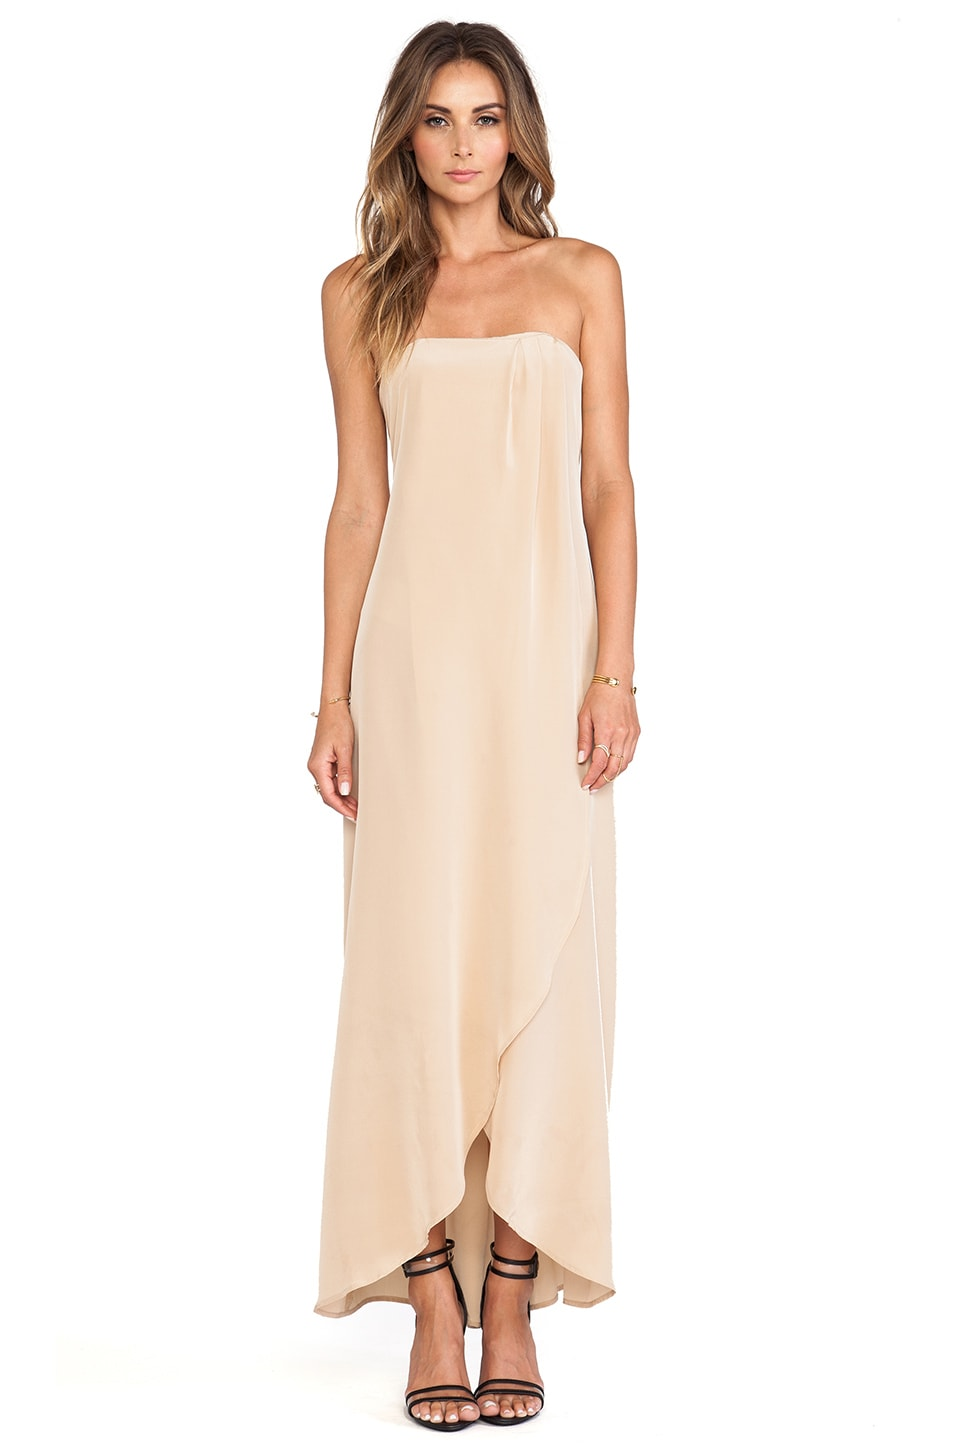 Helena Quinn Karin Maxi Dress in Cream